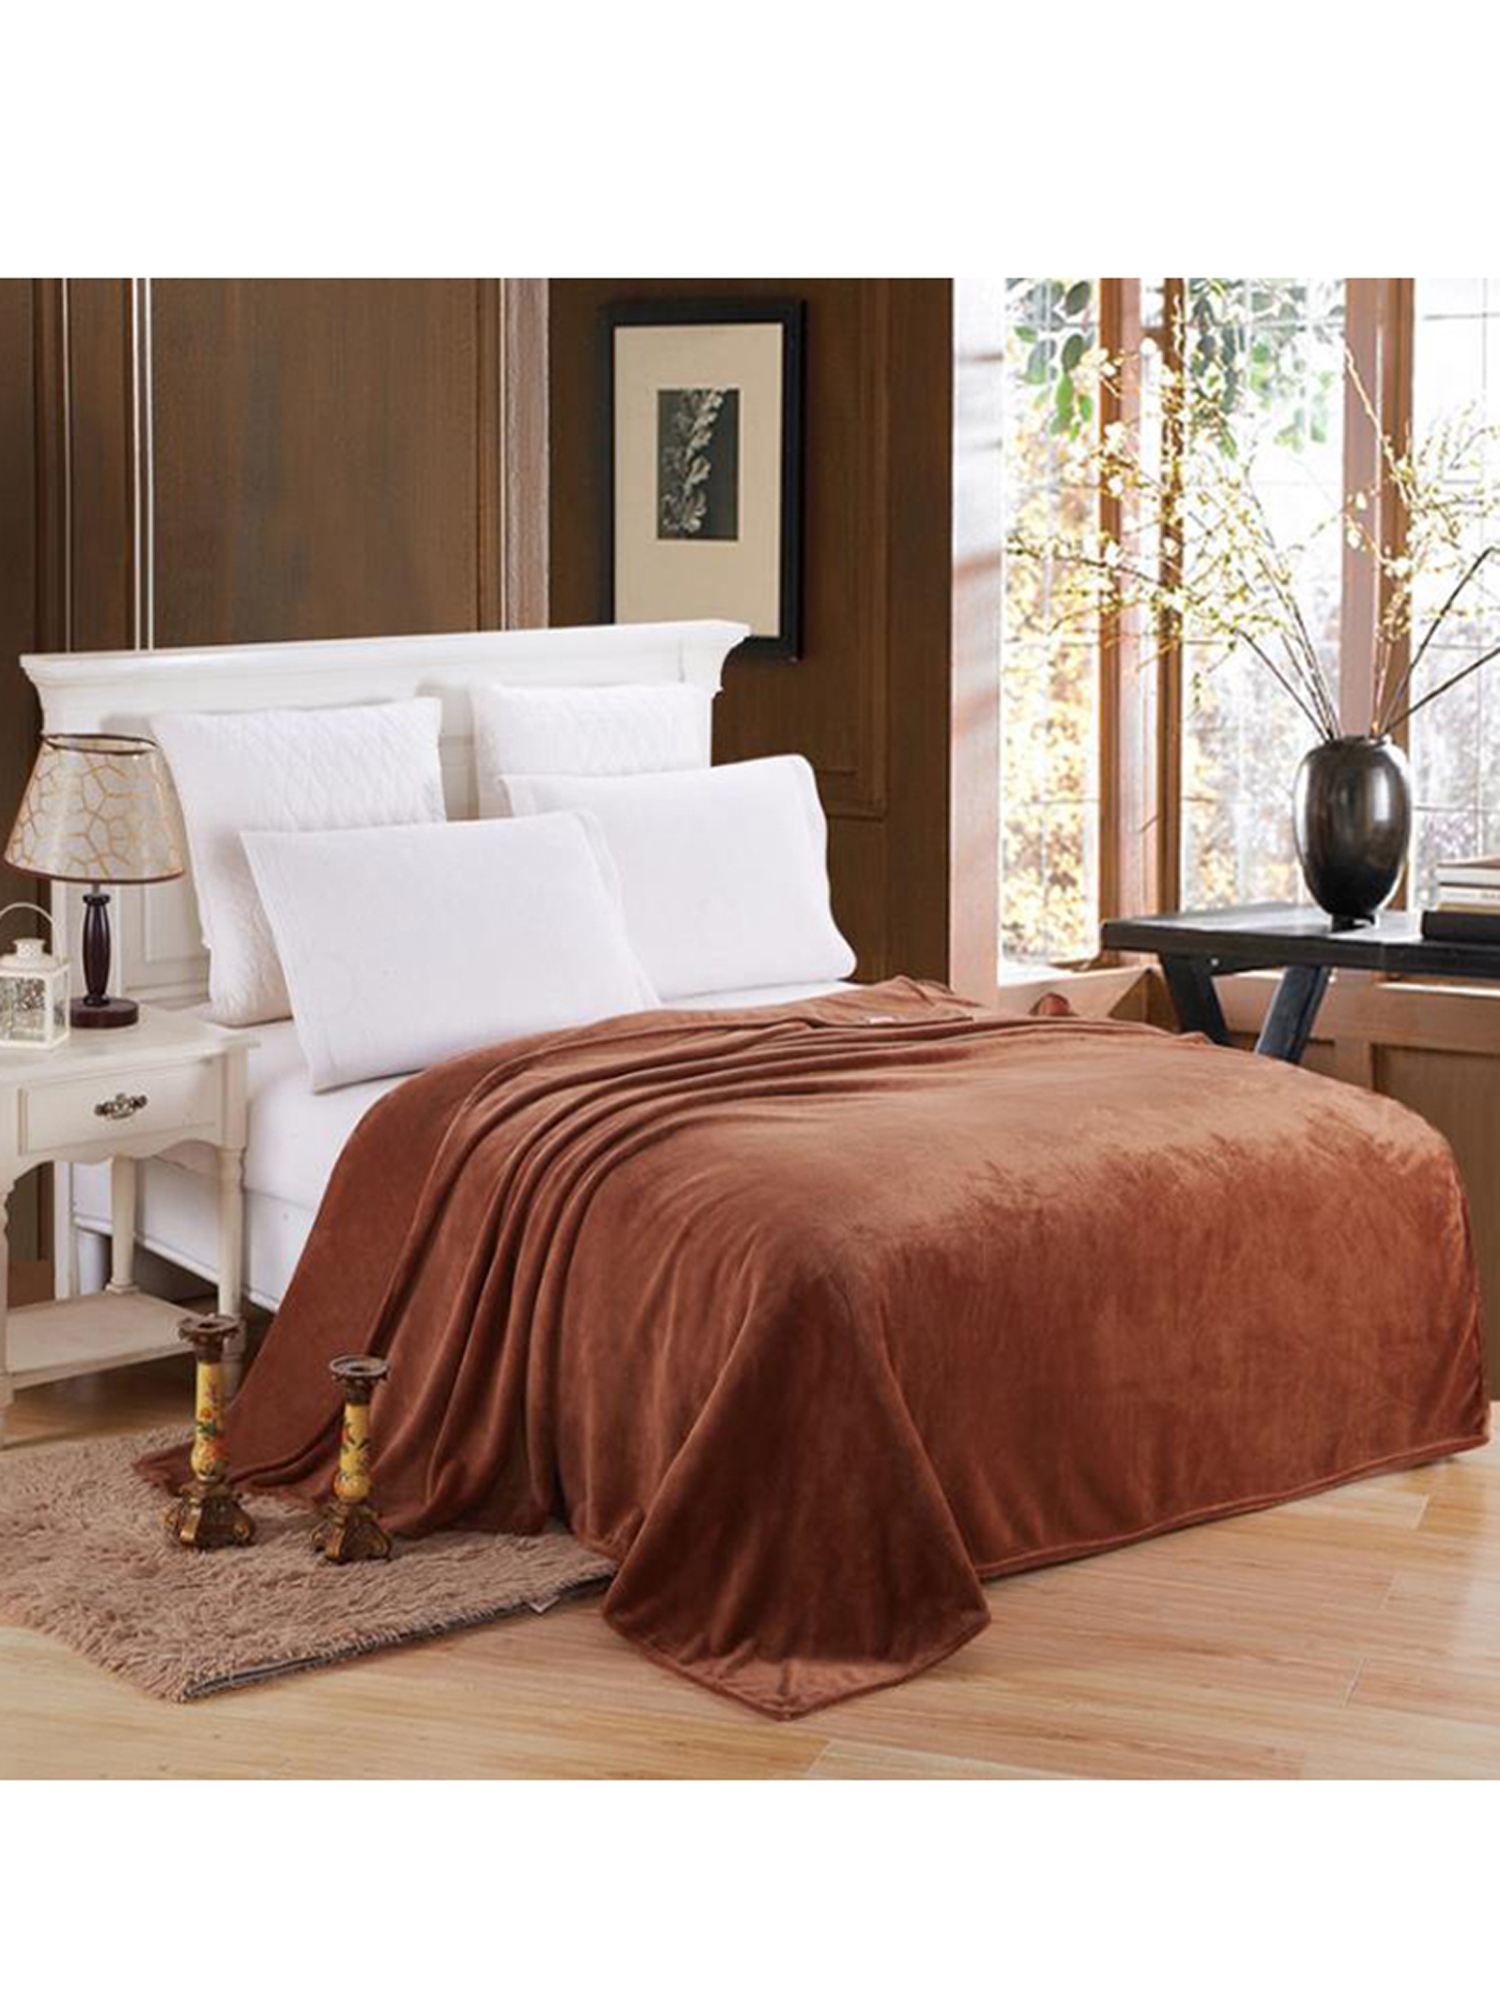 Warm Soft Mink Throw Large Fleece Blanket Double King Size for Couch//Sofa//Bed